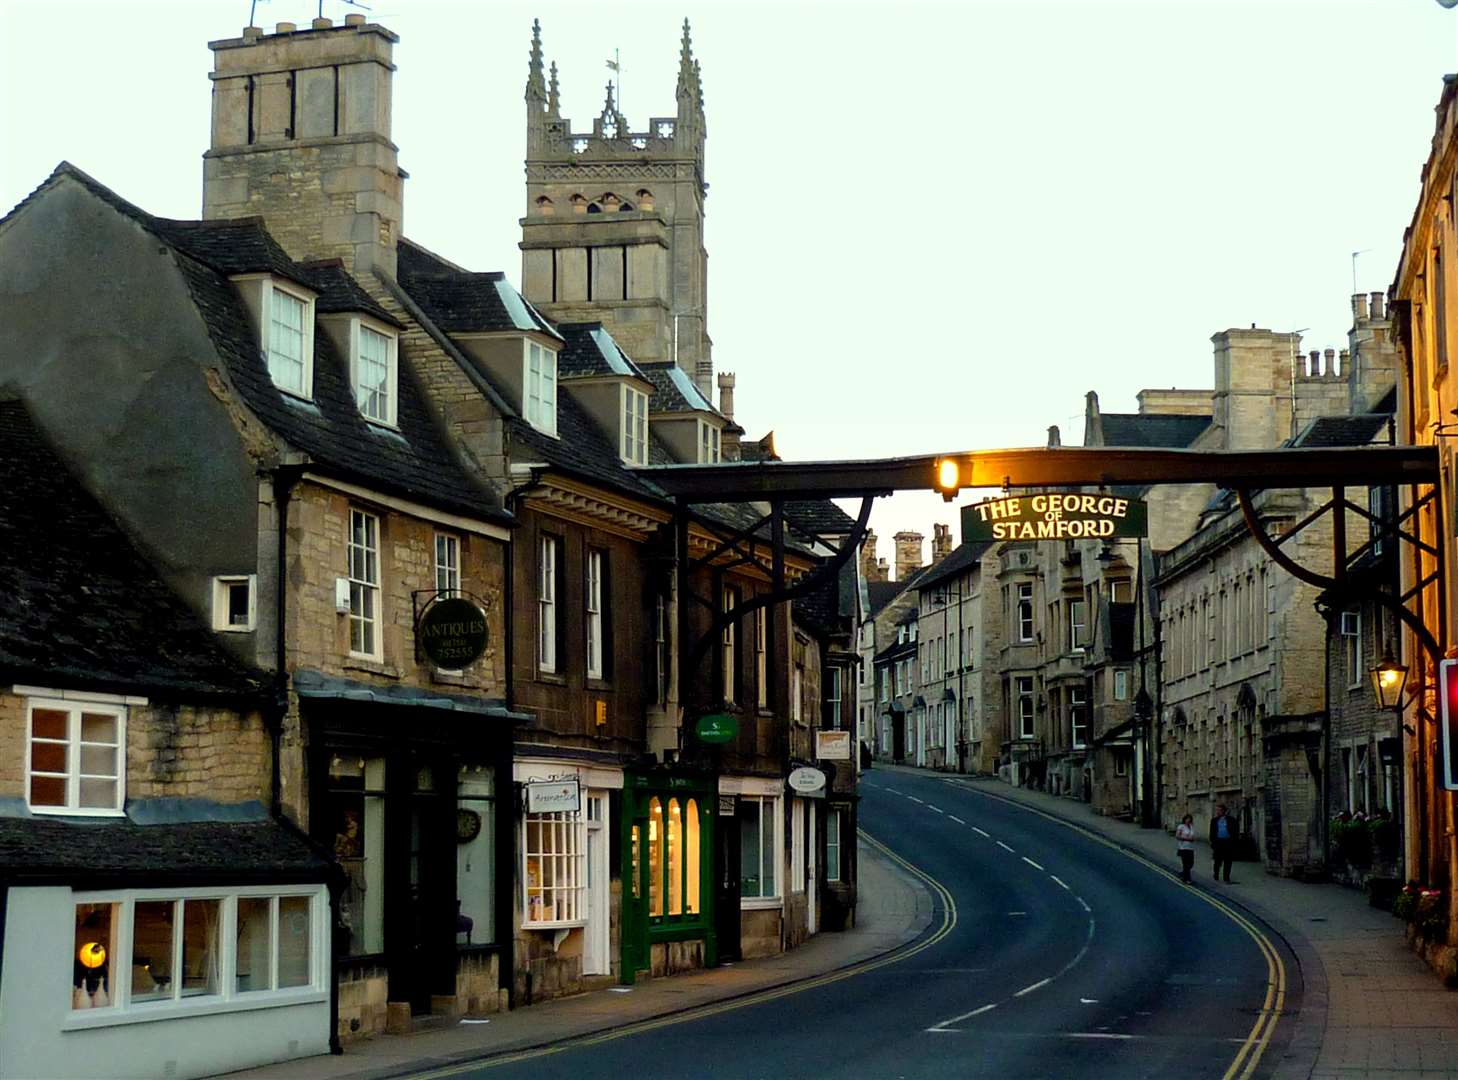 The High Street at Stamford